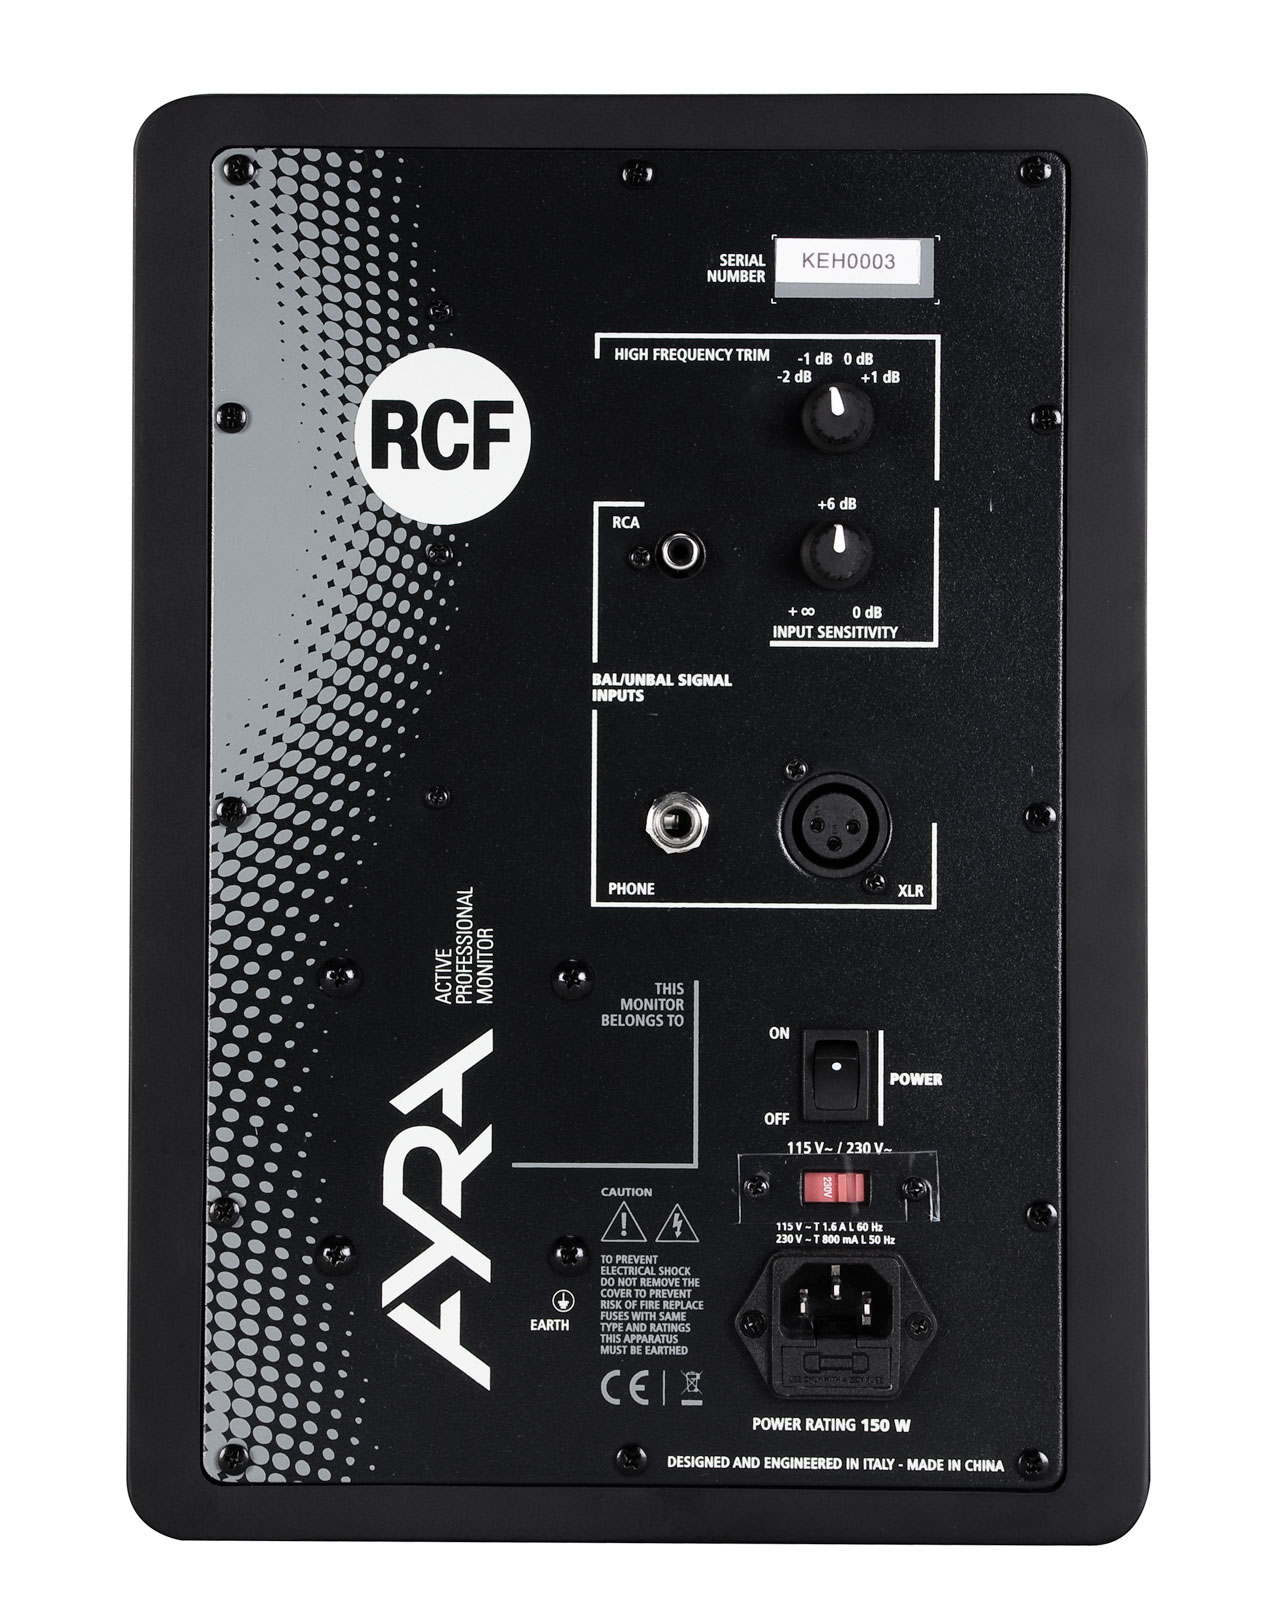 rcf ayra 8 two way studio monitor 8 inch w reflection free front cabinet design rcf13 ayra 8. Black Bedroom Furniture Sets. Home Design Ideas